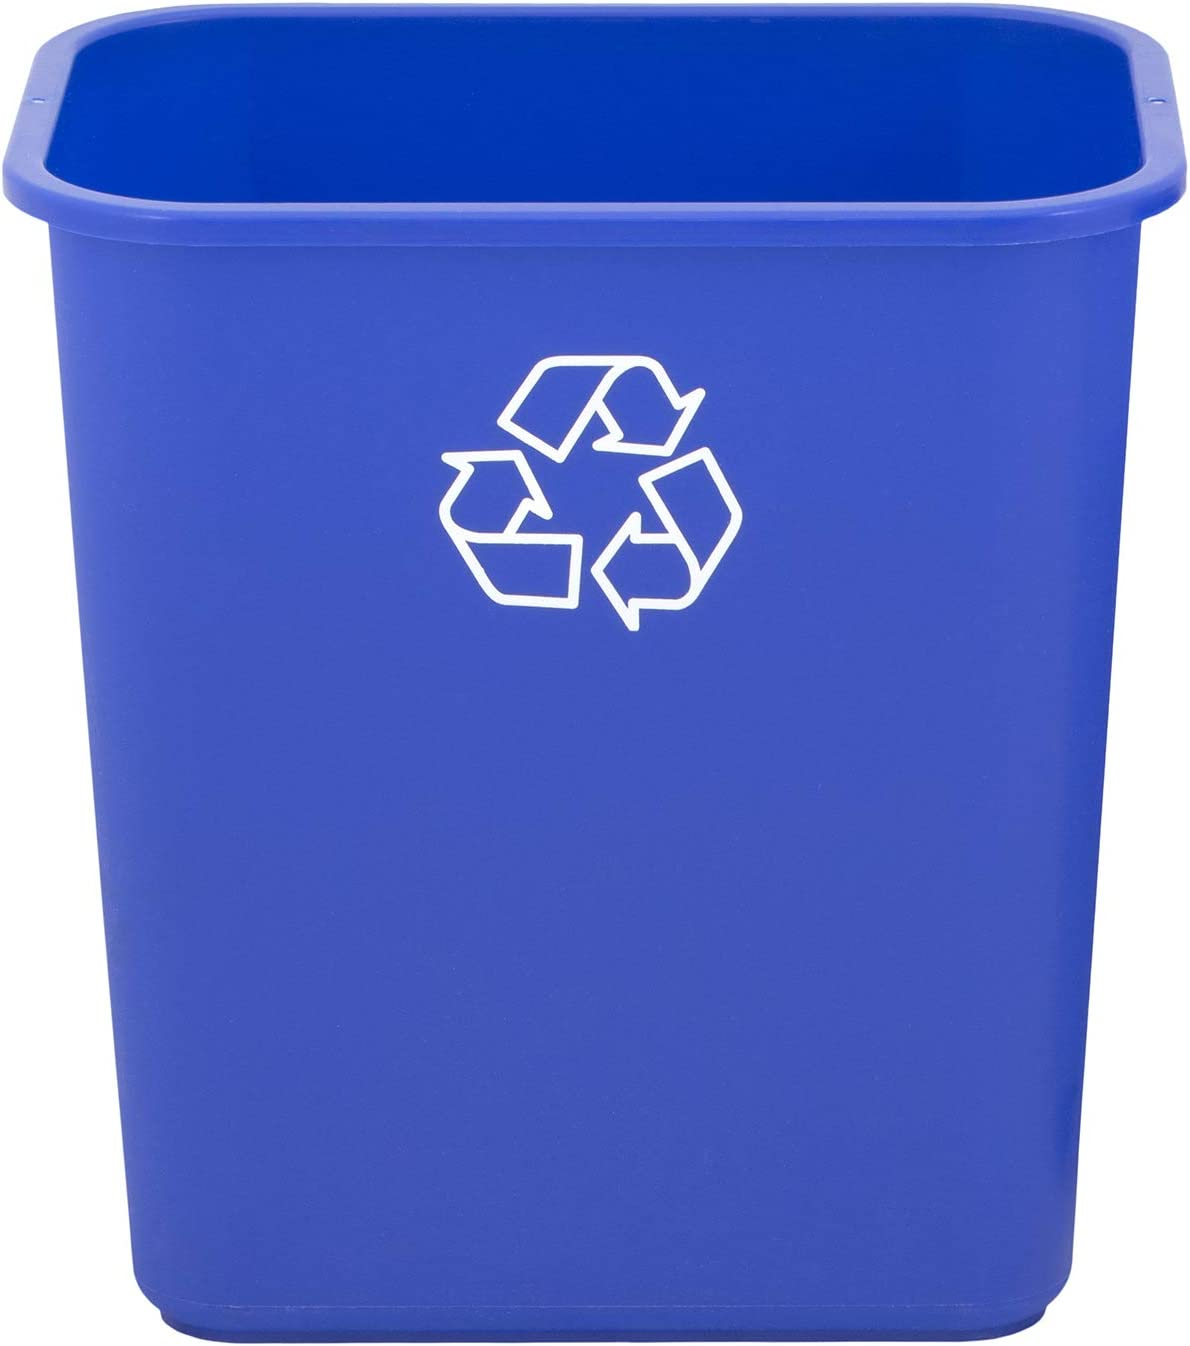 United Solutions WB0324 7 Gallon/28 Quart Efficient Recycle Wastebasket | Pack of 12 | Fits Under Desk | Small, Narrow Spaces in Commercial, Kitchen, Home Office, Dorm | Easy to Clean, 12 Pack, Blue